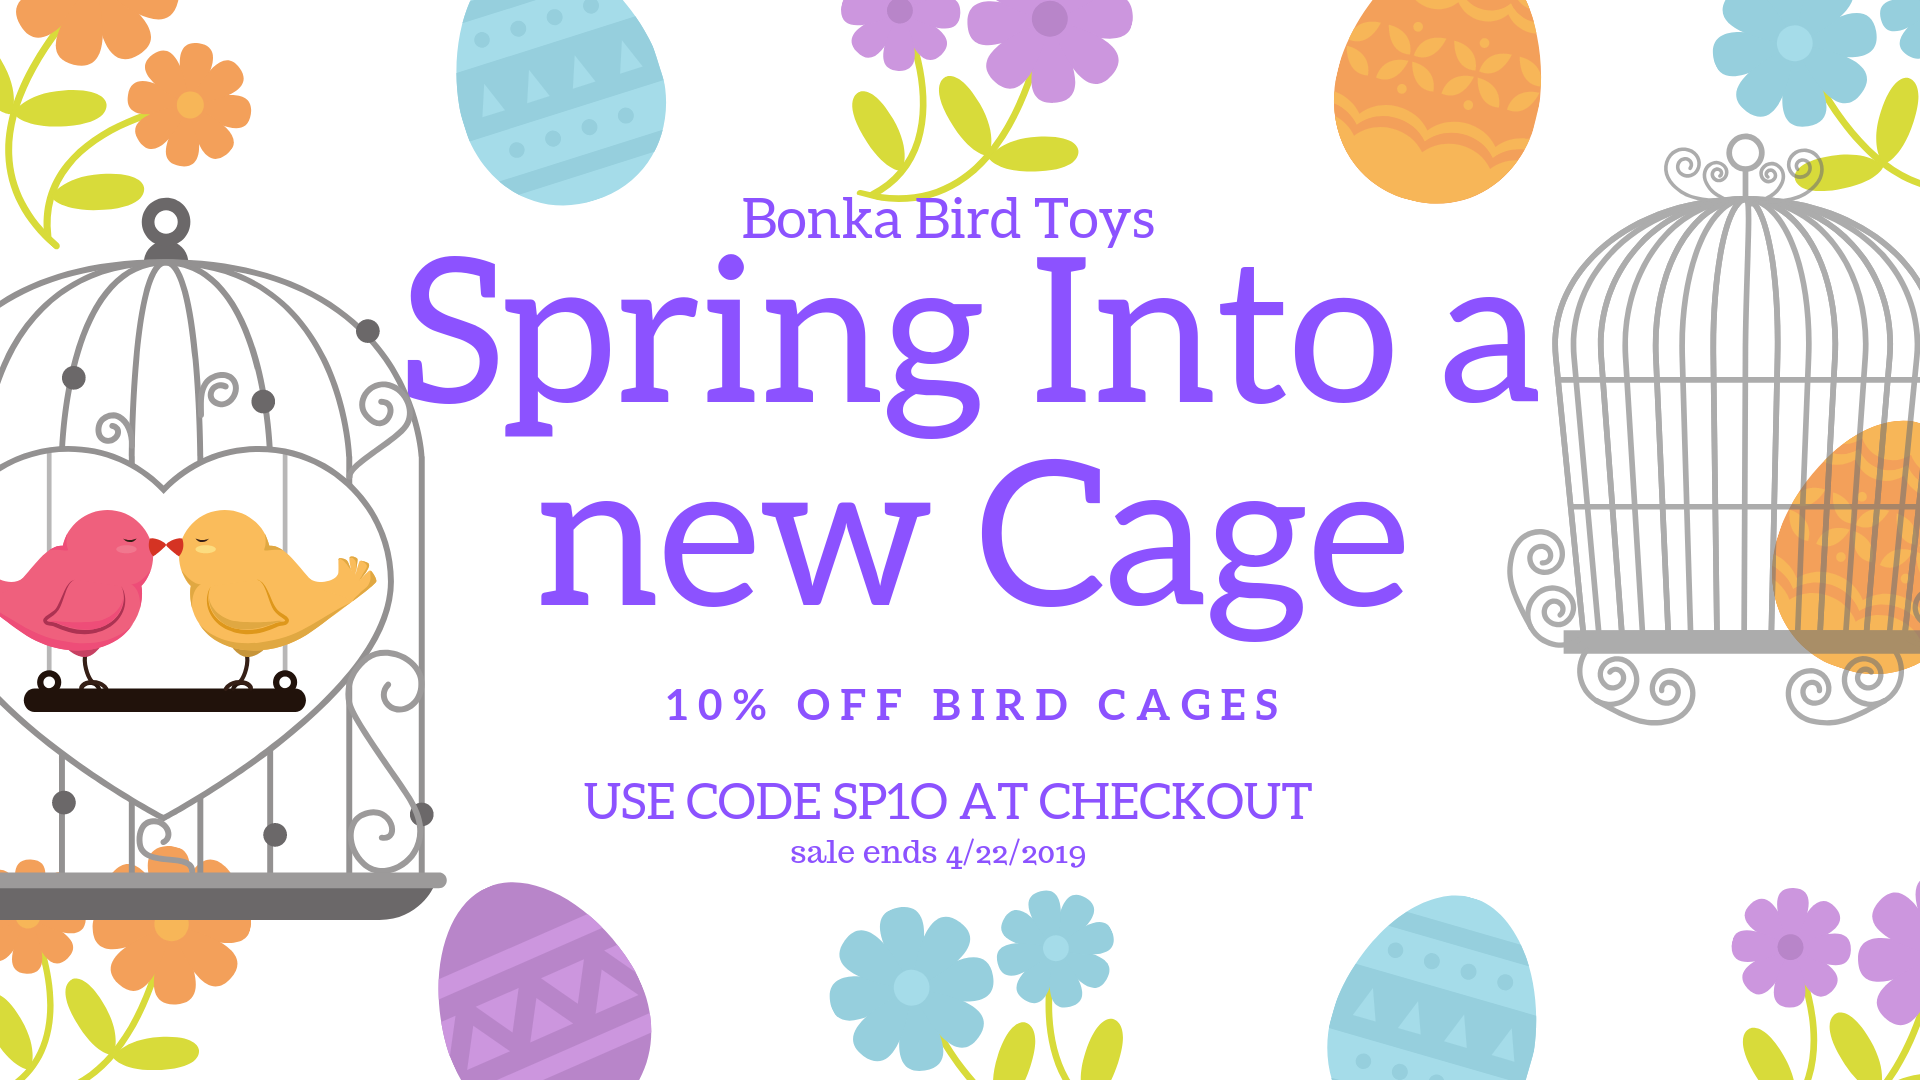 spring-into-a-new-cage.png